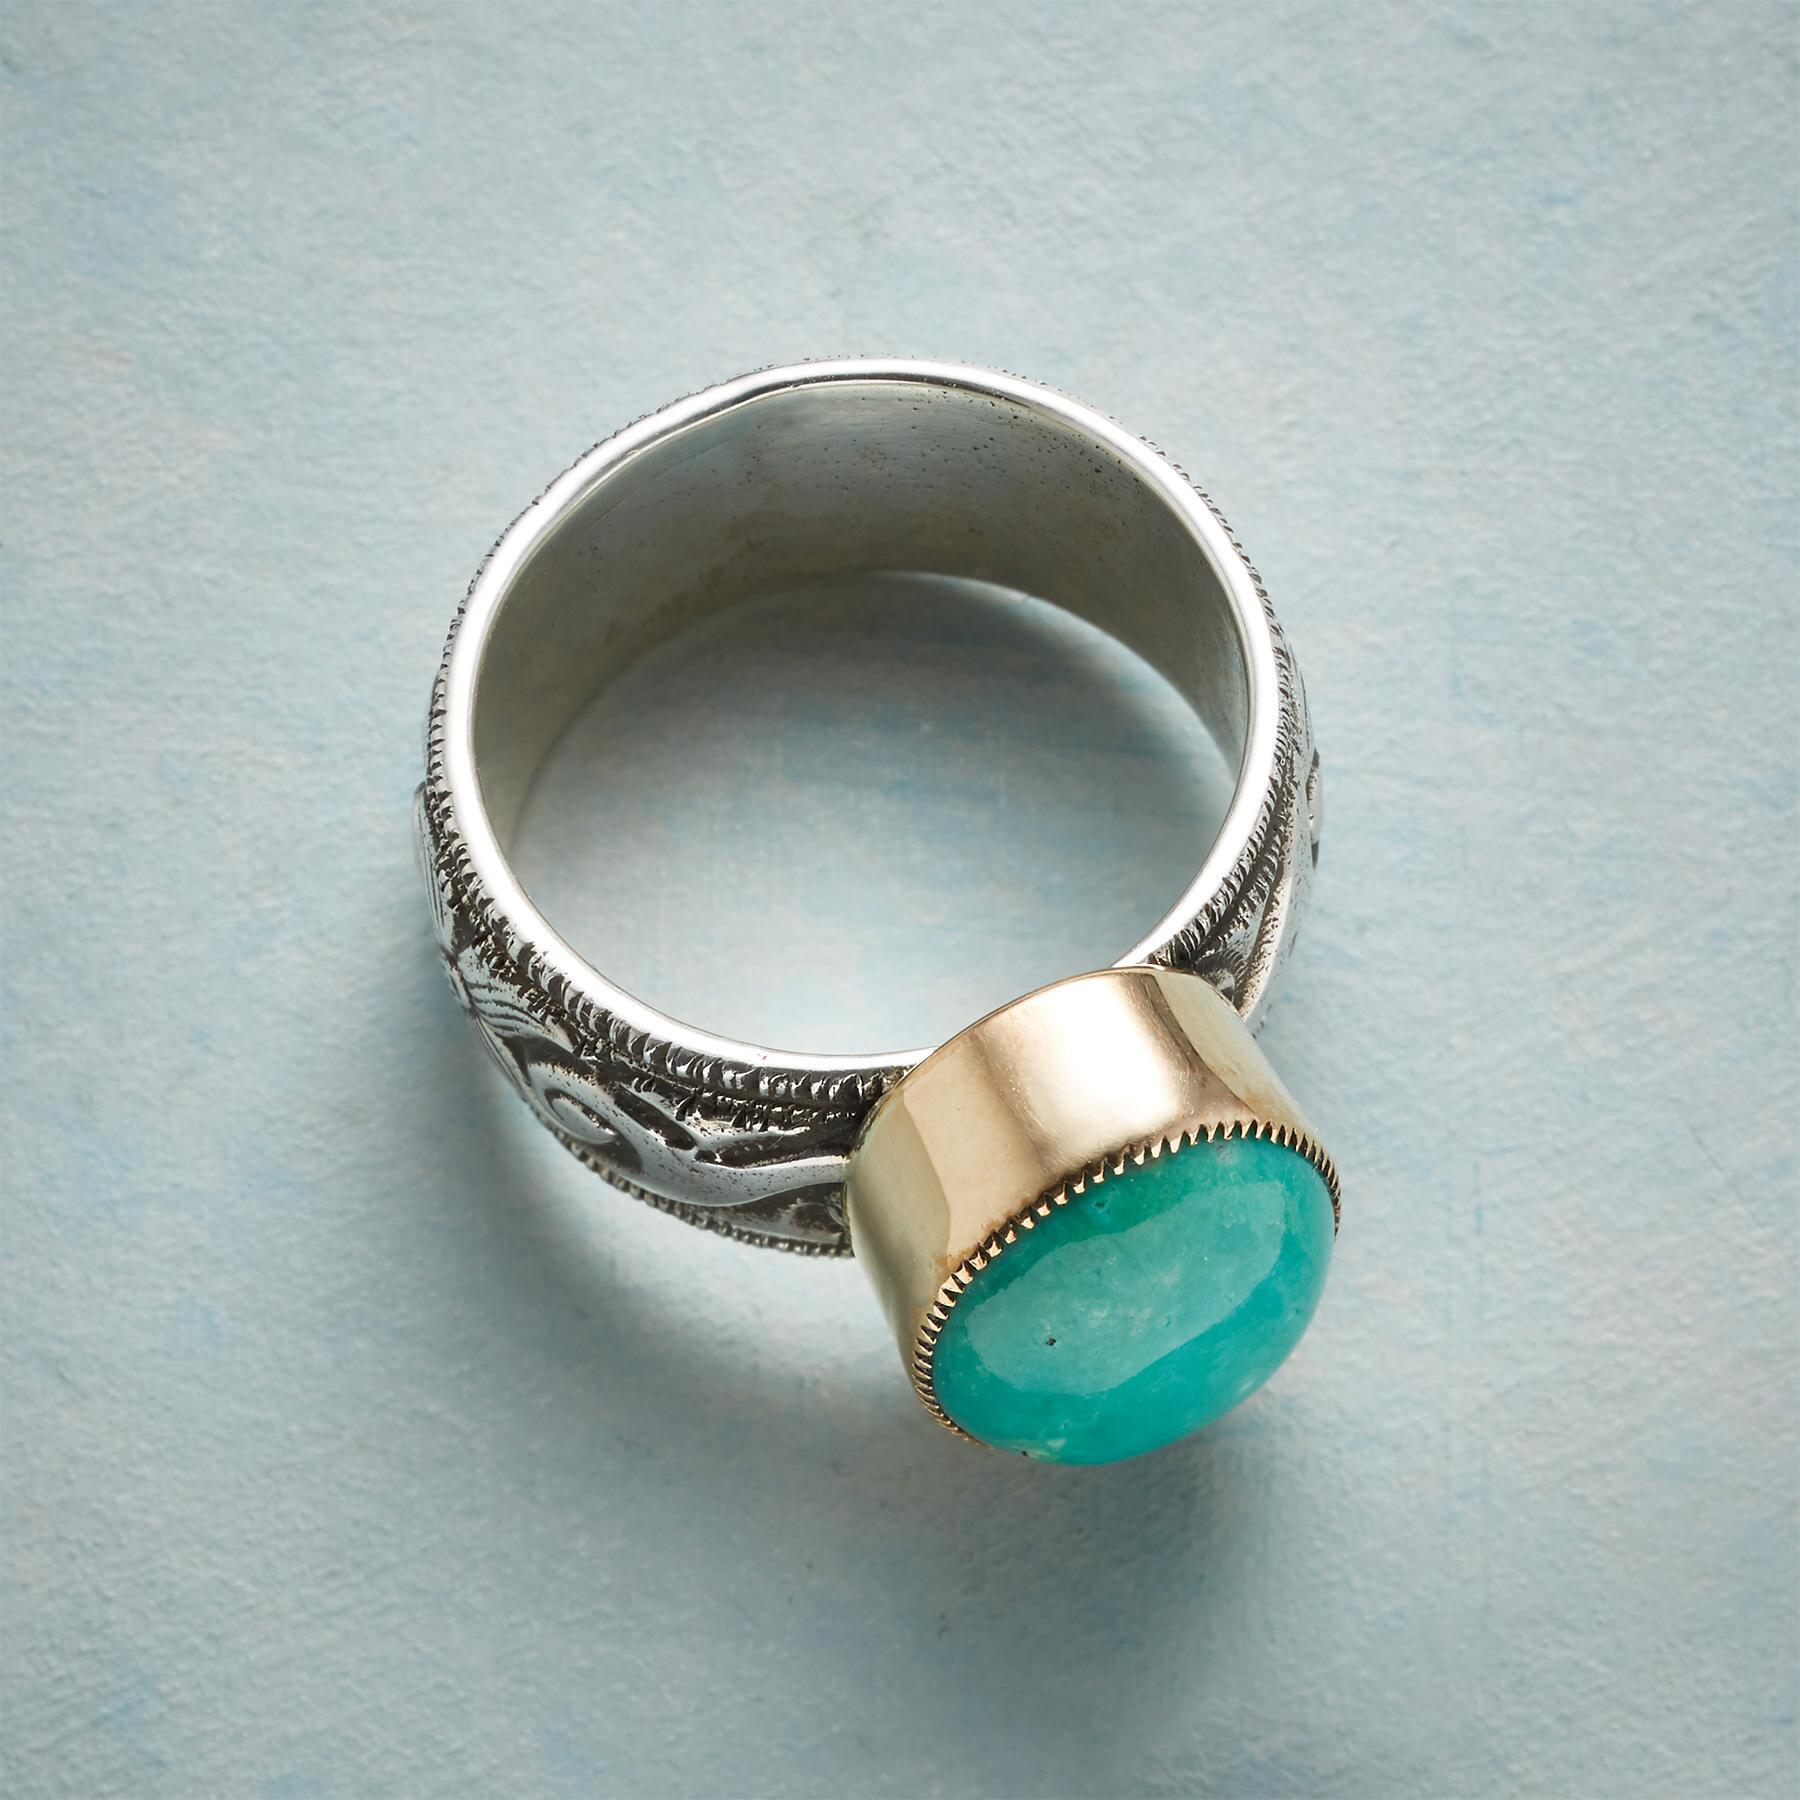 PERFECTLY PAIRED RING: View 2